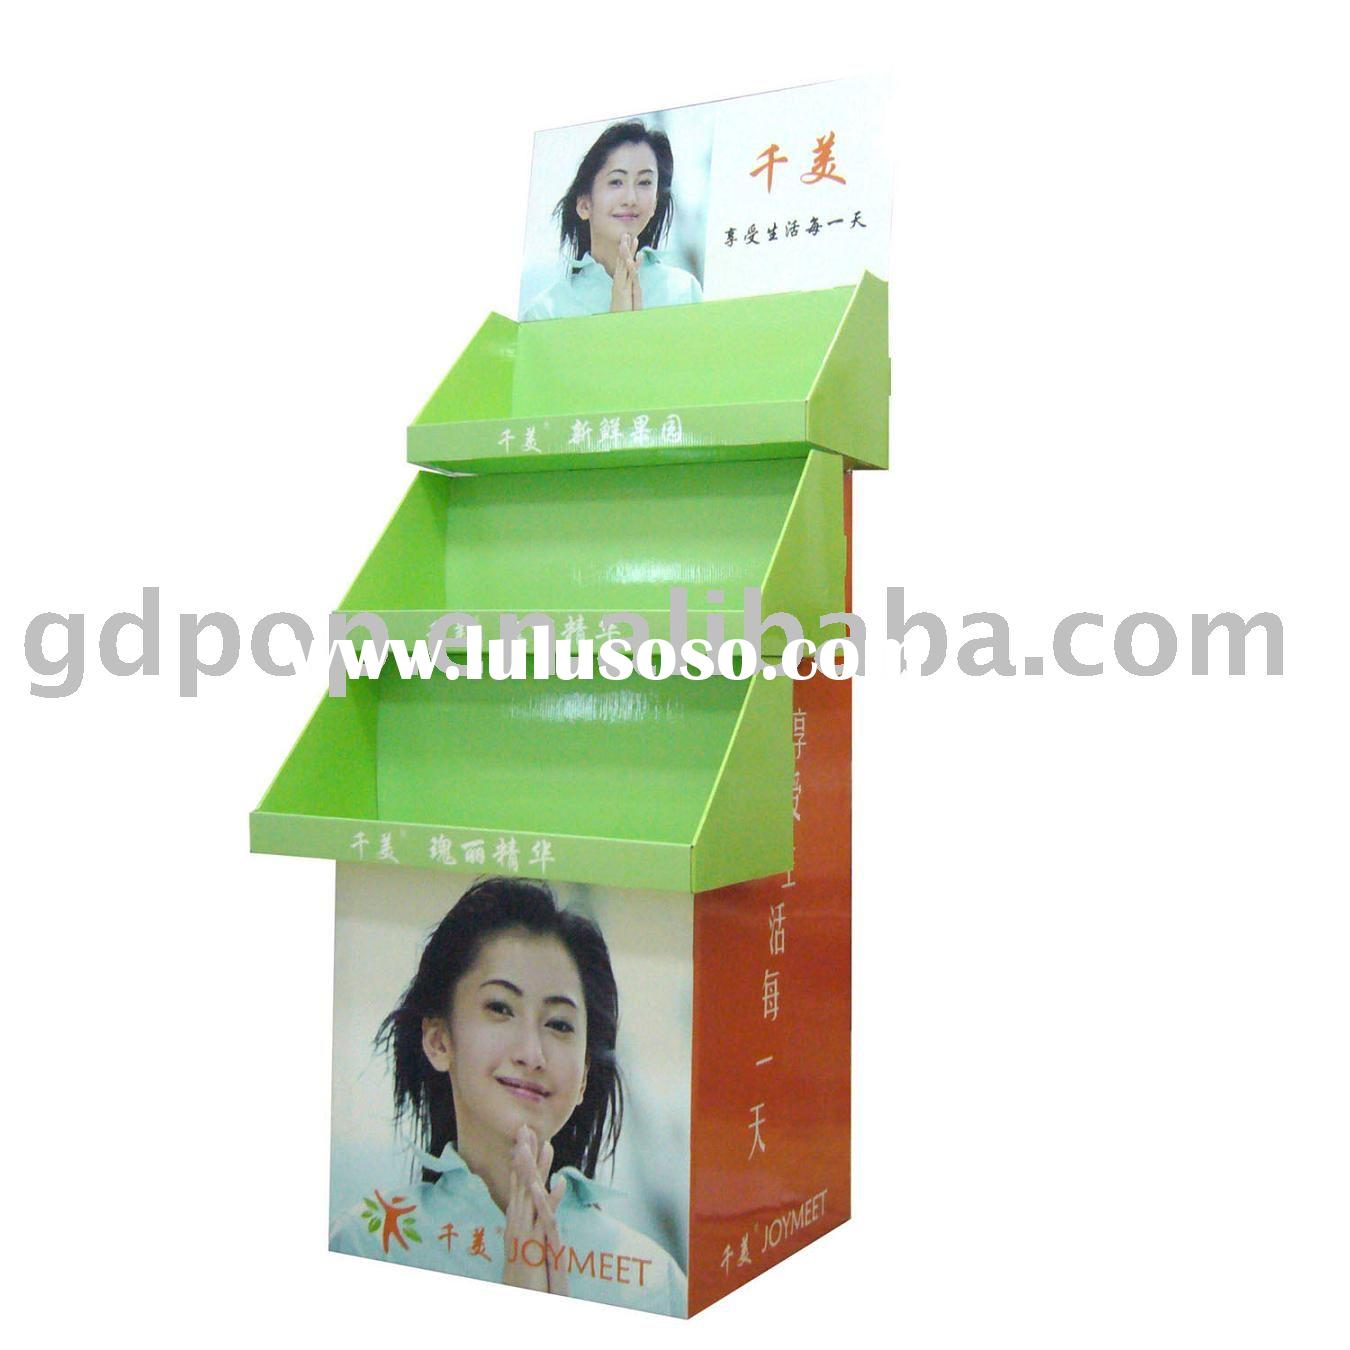 cardboard display,cardboard pop displays, corrugated display boxes, pallet displays, counter top dis